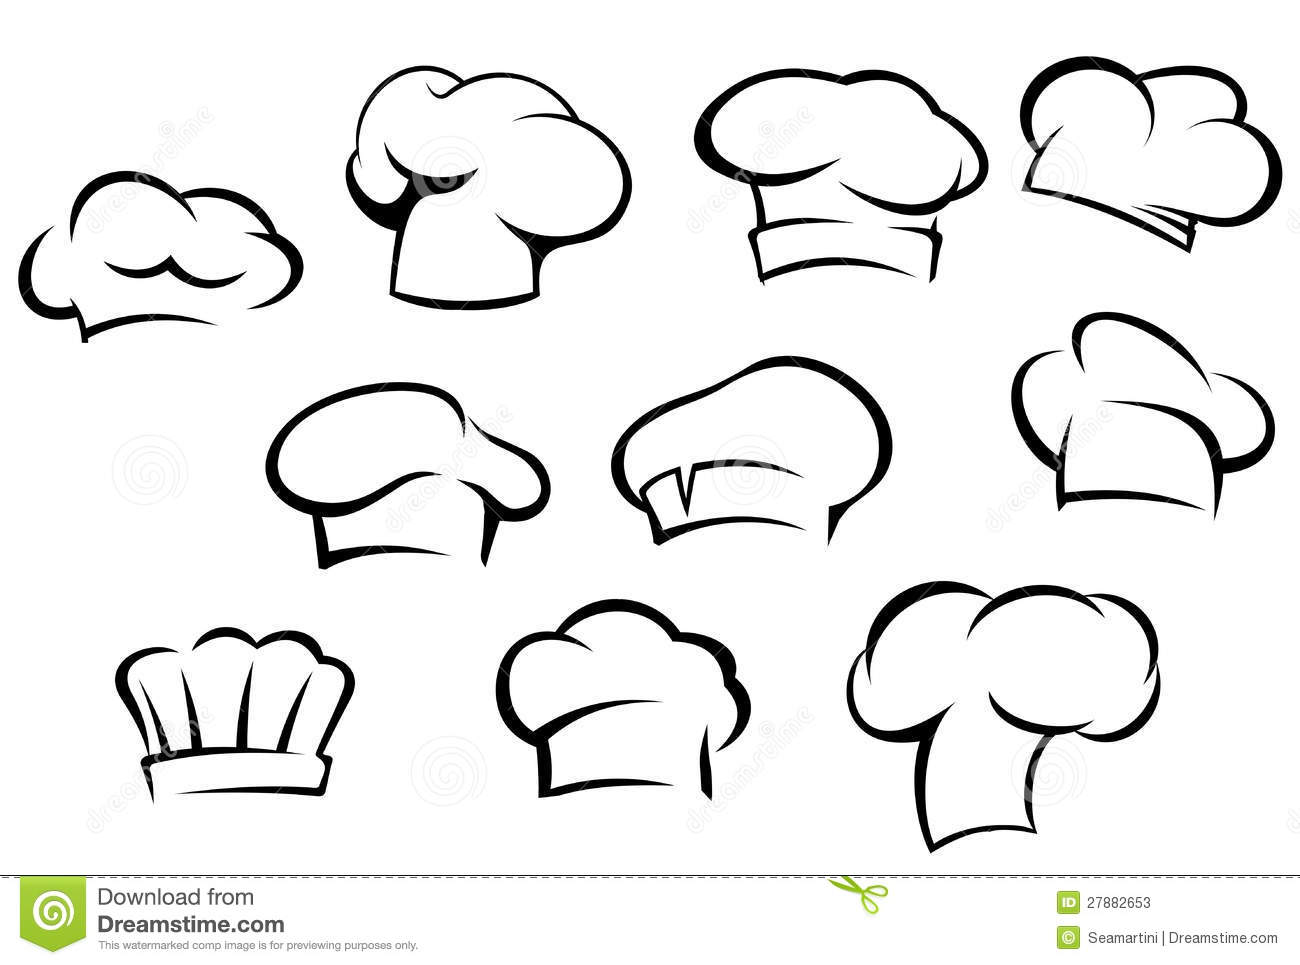 Coloriages Personnages Imprimer together with Chef together with Fotografie Stock Cappelli E Protezioni Bianchi Del Cuoco Unico Image27882653 together with Stock Illustration France Icons Image Vector Illustration Can Be Scaled To Any Size Loss Resolution Image52804461 also Stock Illustration Chef Traditional Toques Caps Hats Baker White Outline Style Isolated White Background Cafe Menu Restaurant Image57156743. on chef hat